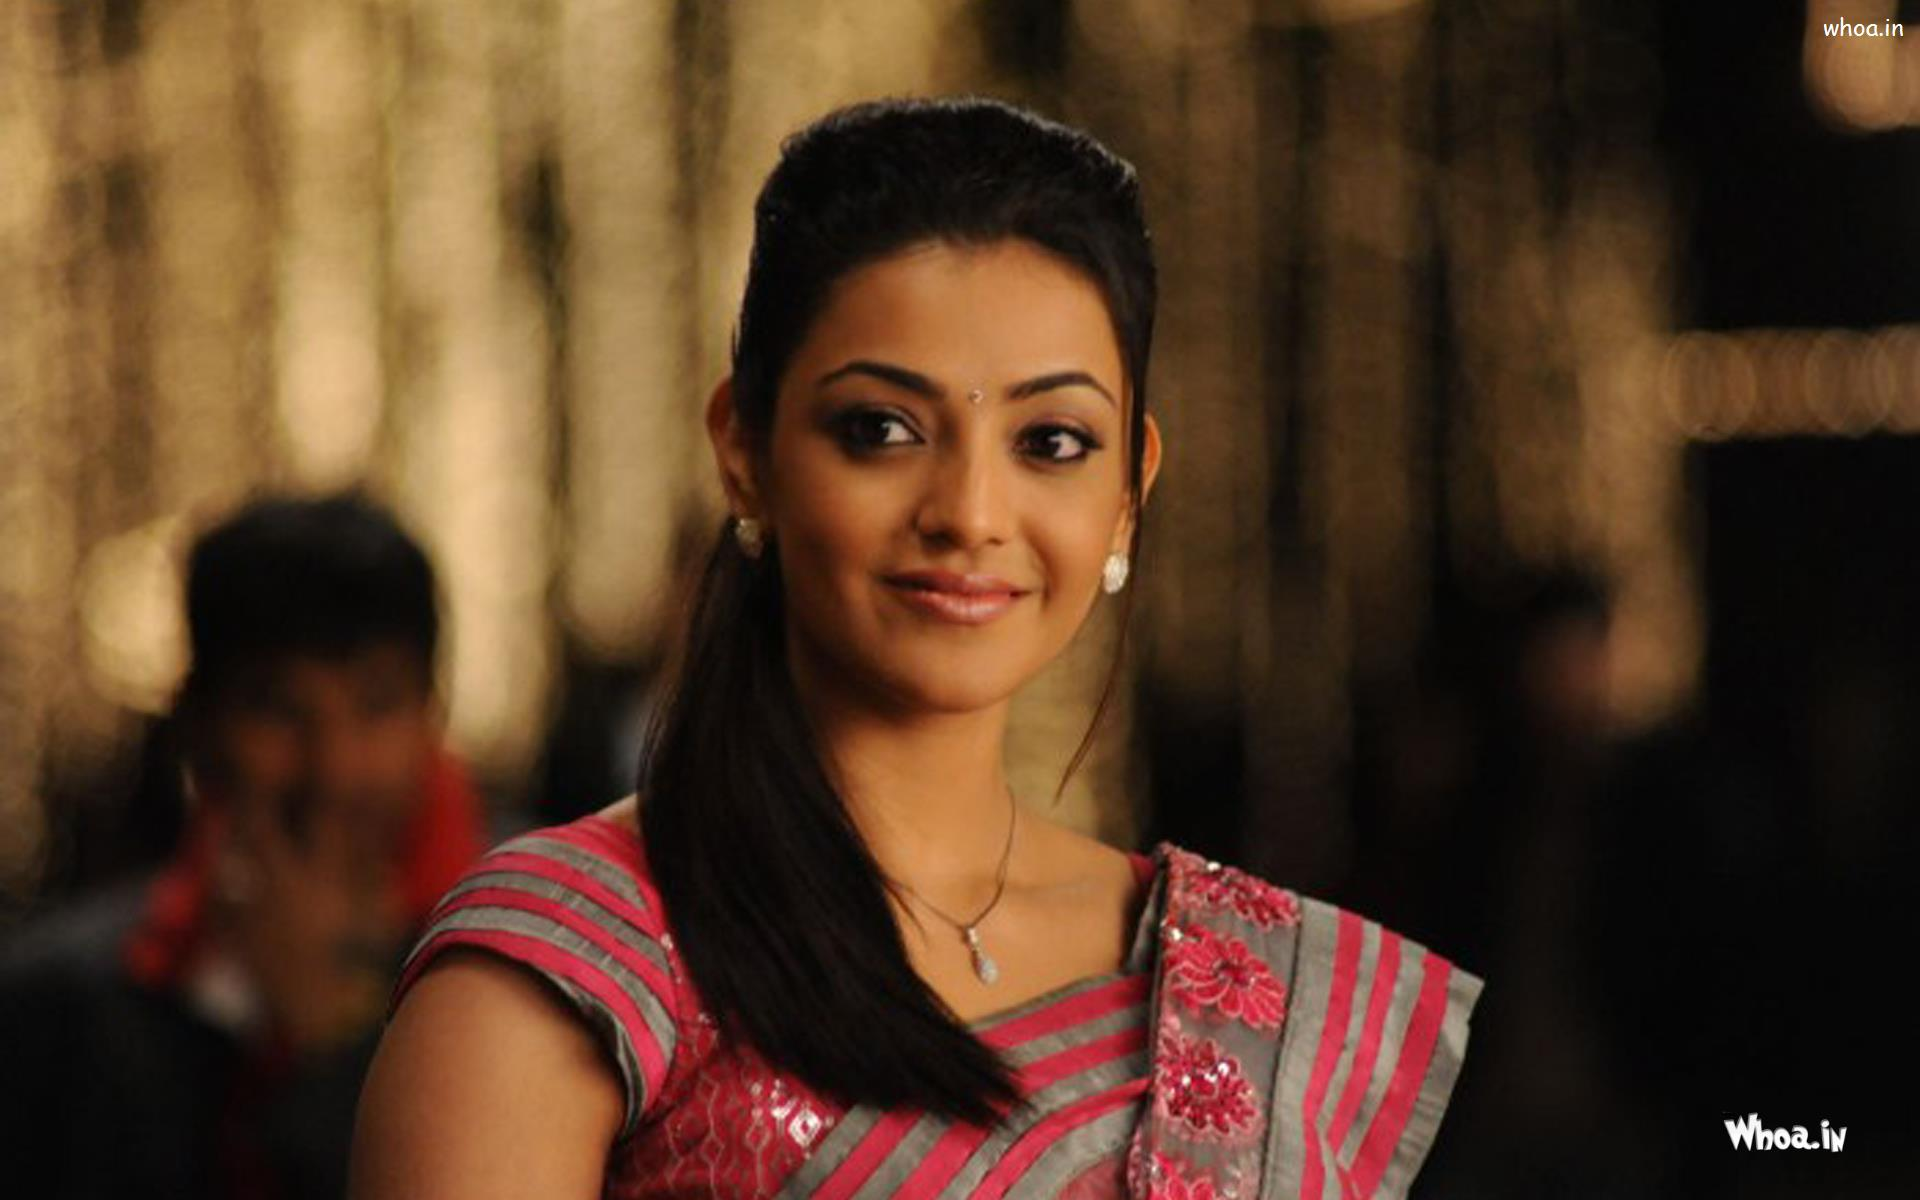 Wallpaper download kajal agarwal - Download